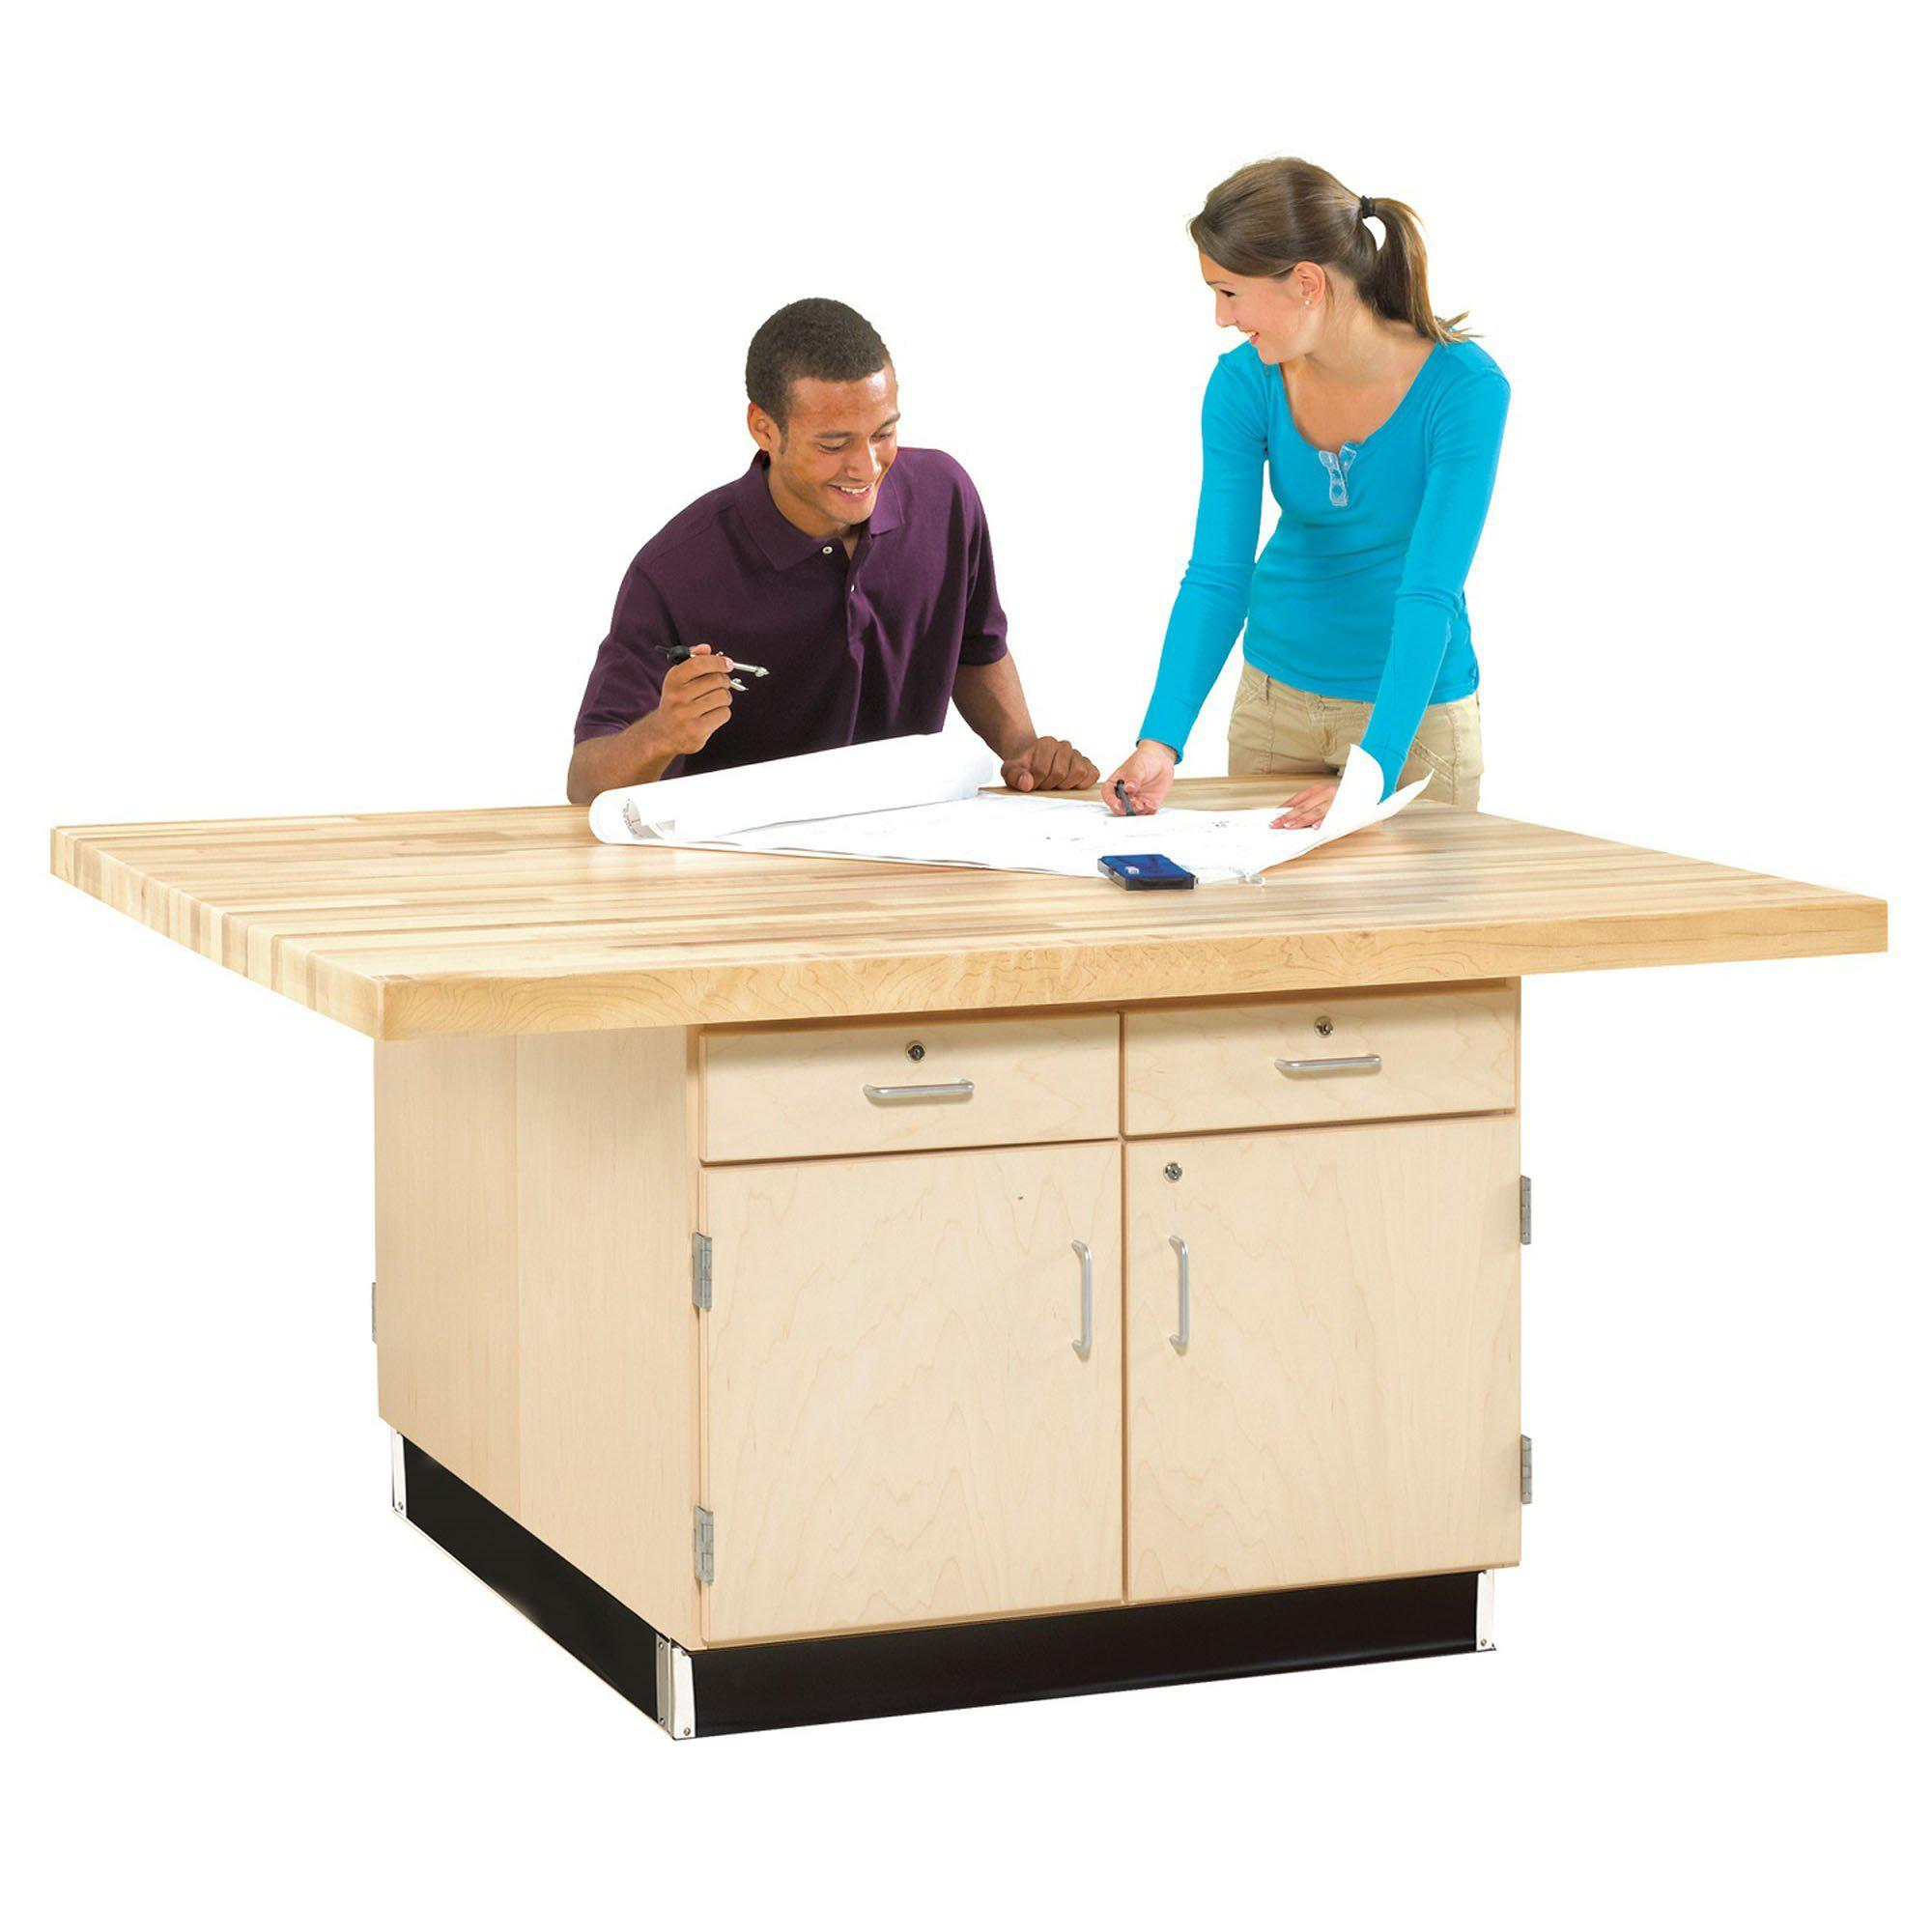 Four-Station Wood Workbench with Four Doors and Drawers-0-